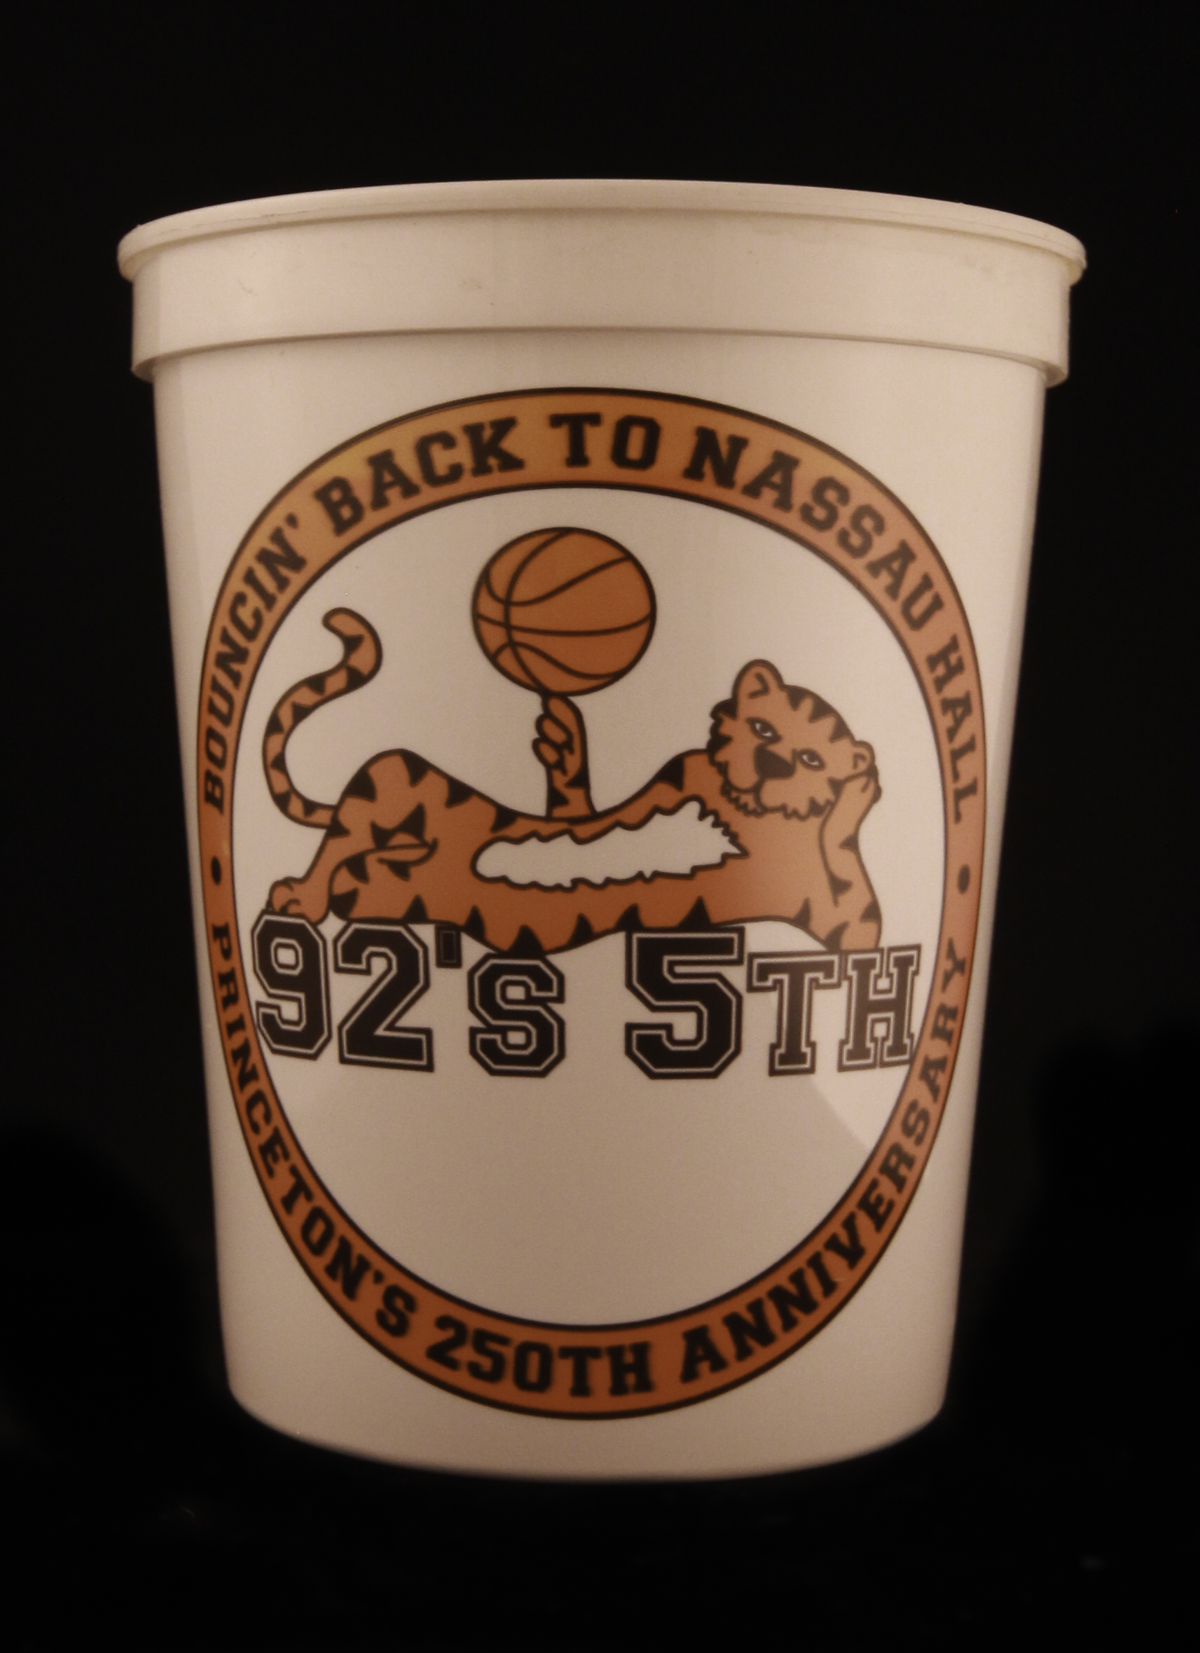 1992 Beer Cup 05th Reunion